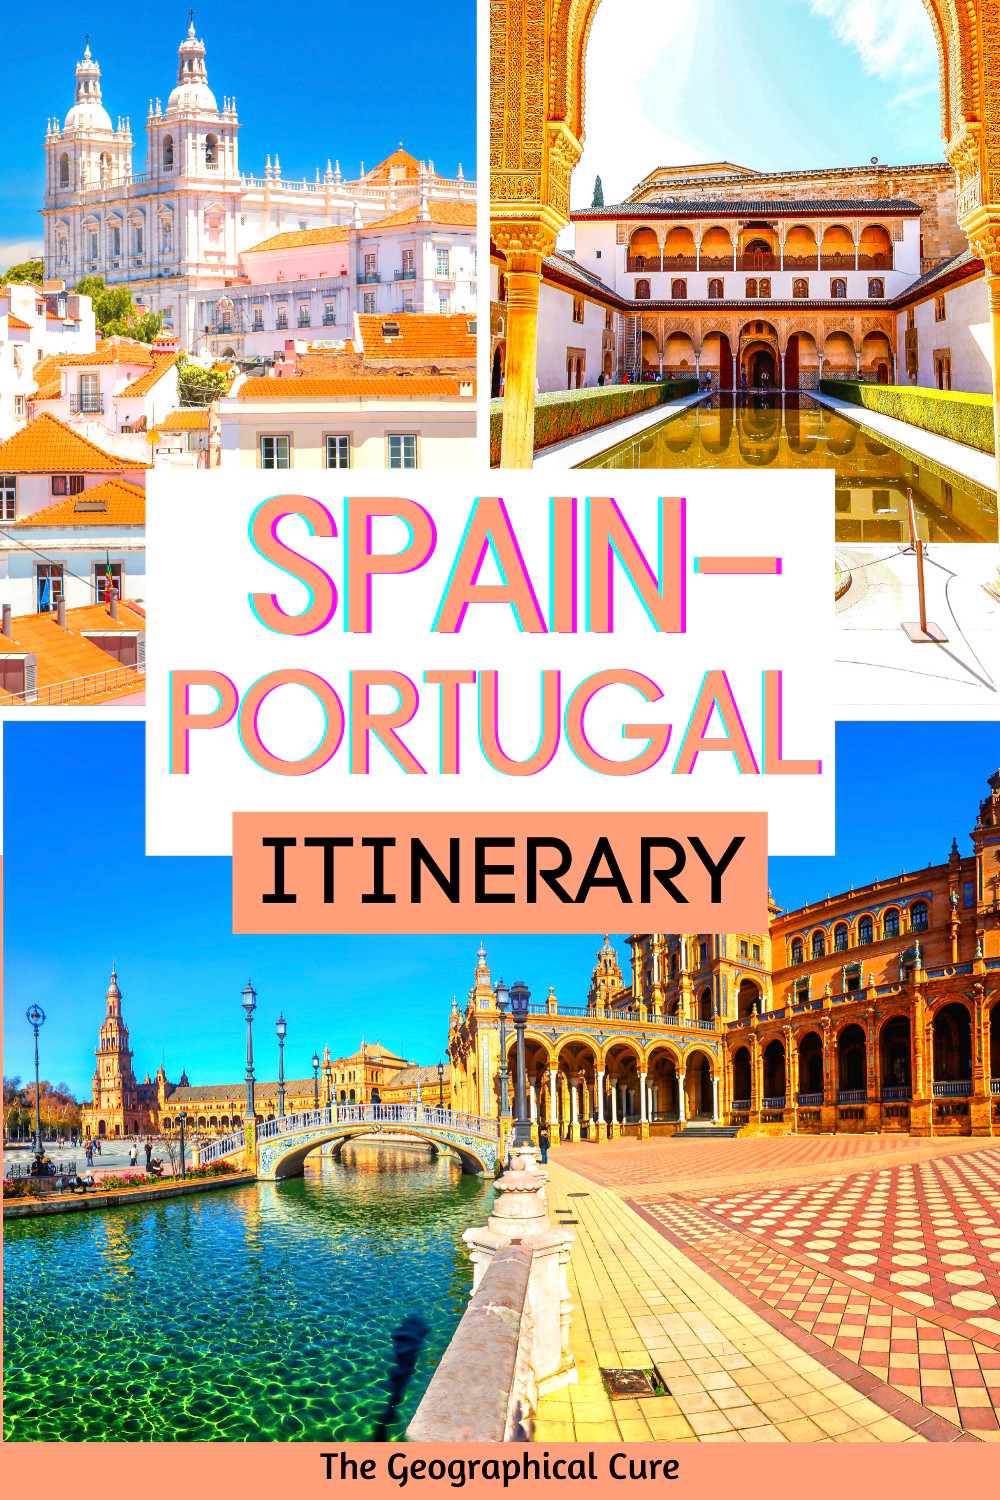 prefect 10 days in Portugal and Spain itinerary and road trip